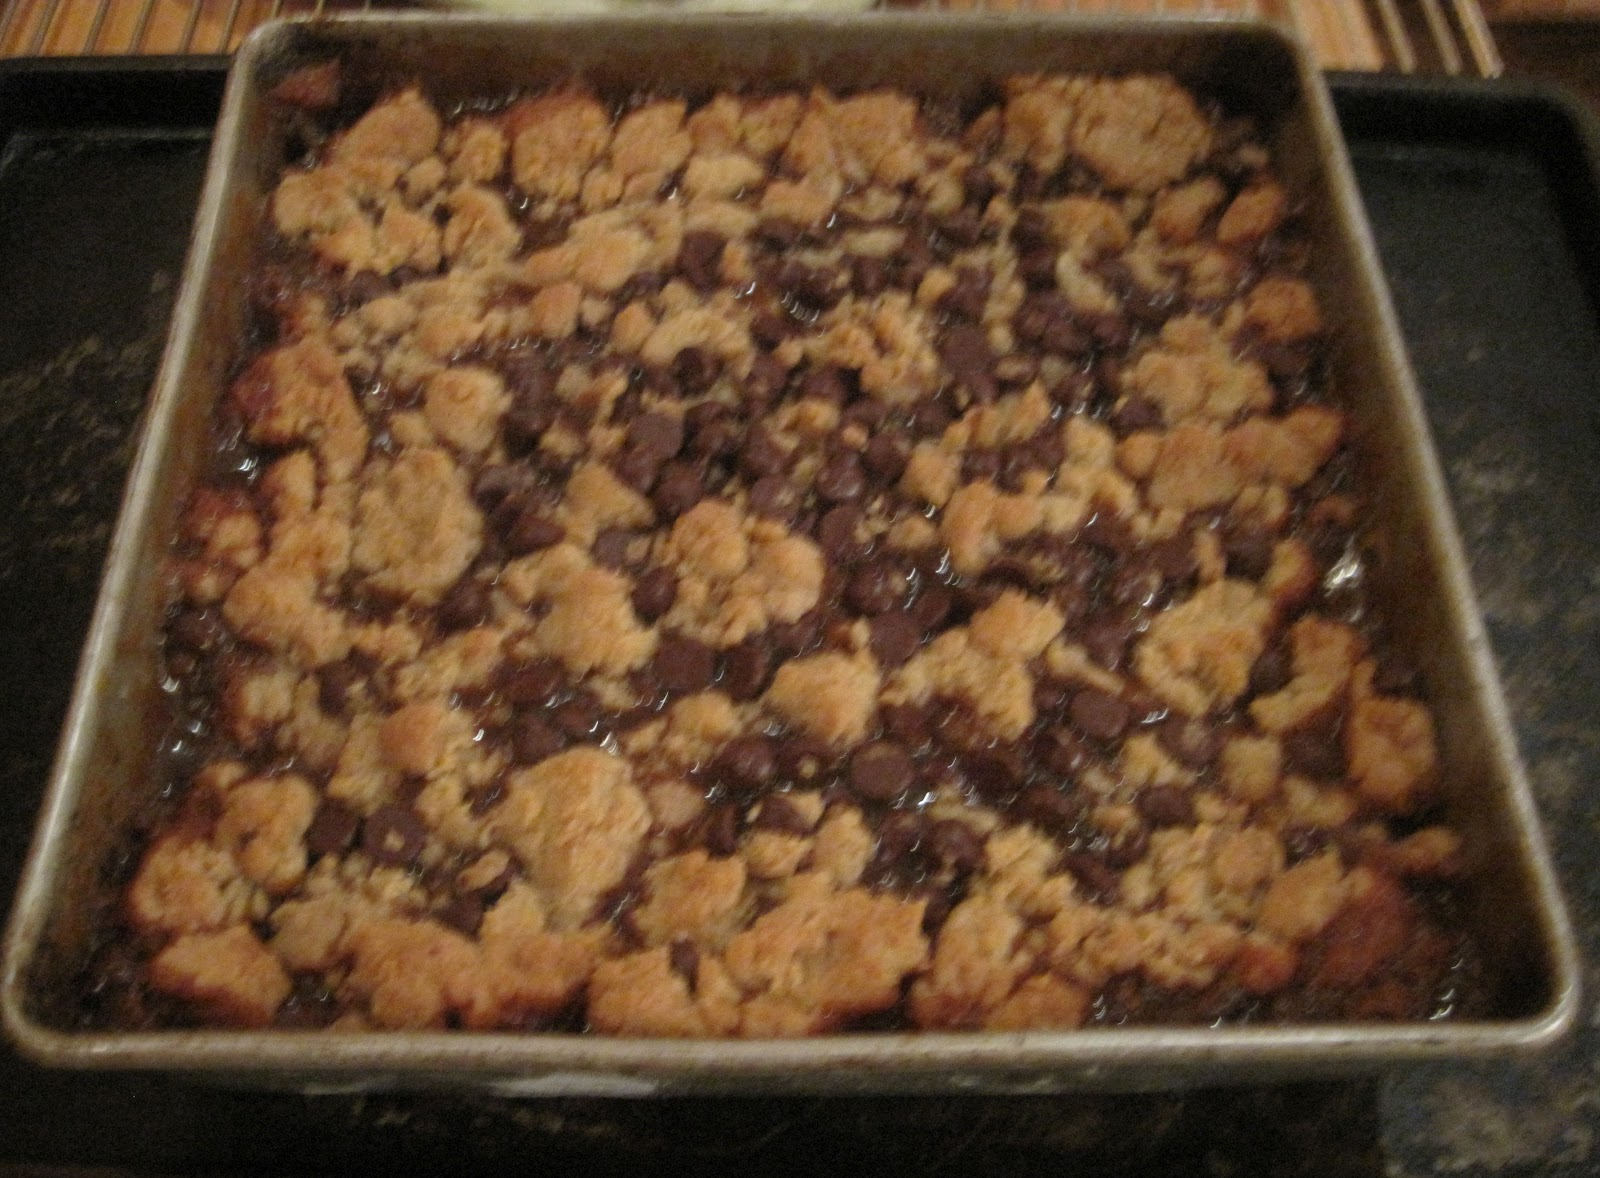 smoores in the kitchen: Salted caramel chocolate chip cookie bar